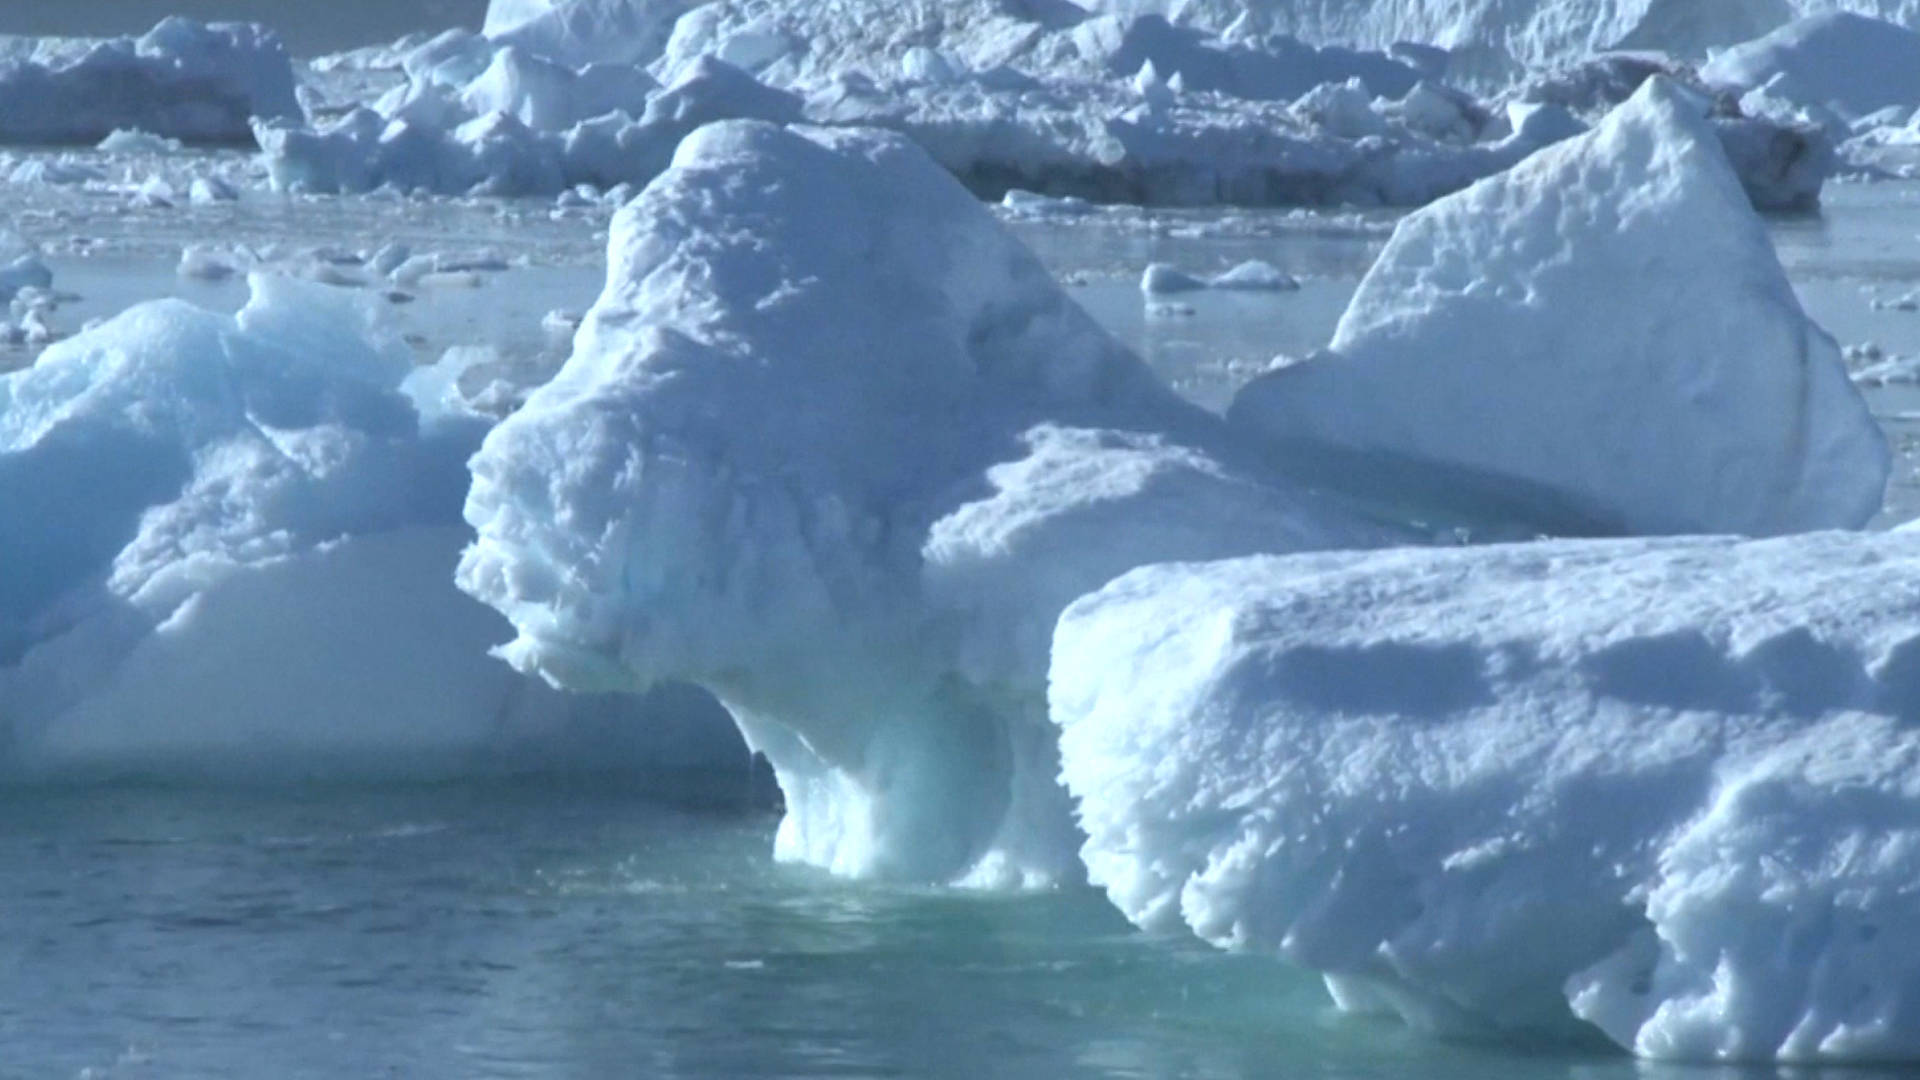 U.N. Warns Arctic on Pace to Warm by 5 Degrees Celsius by 2050